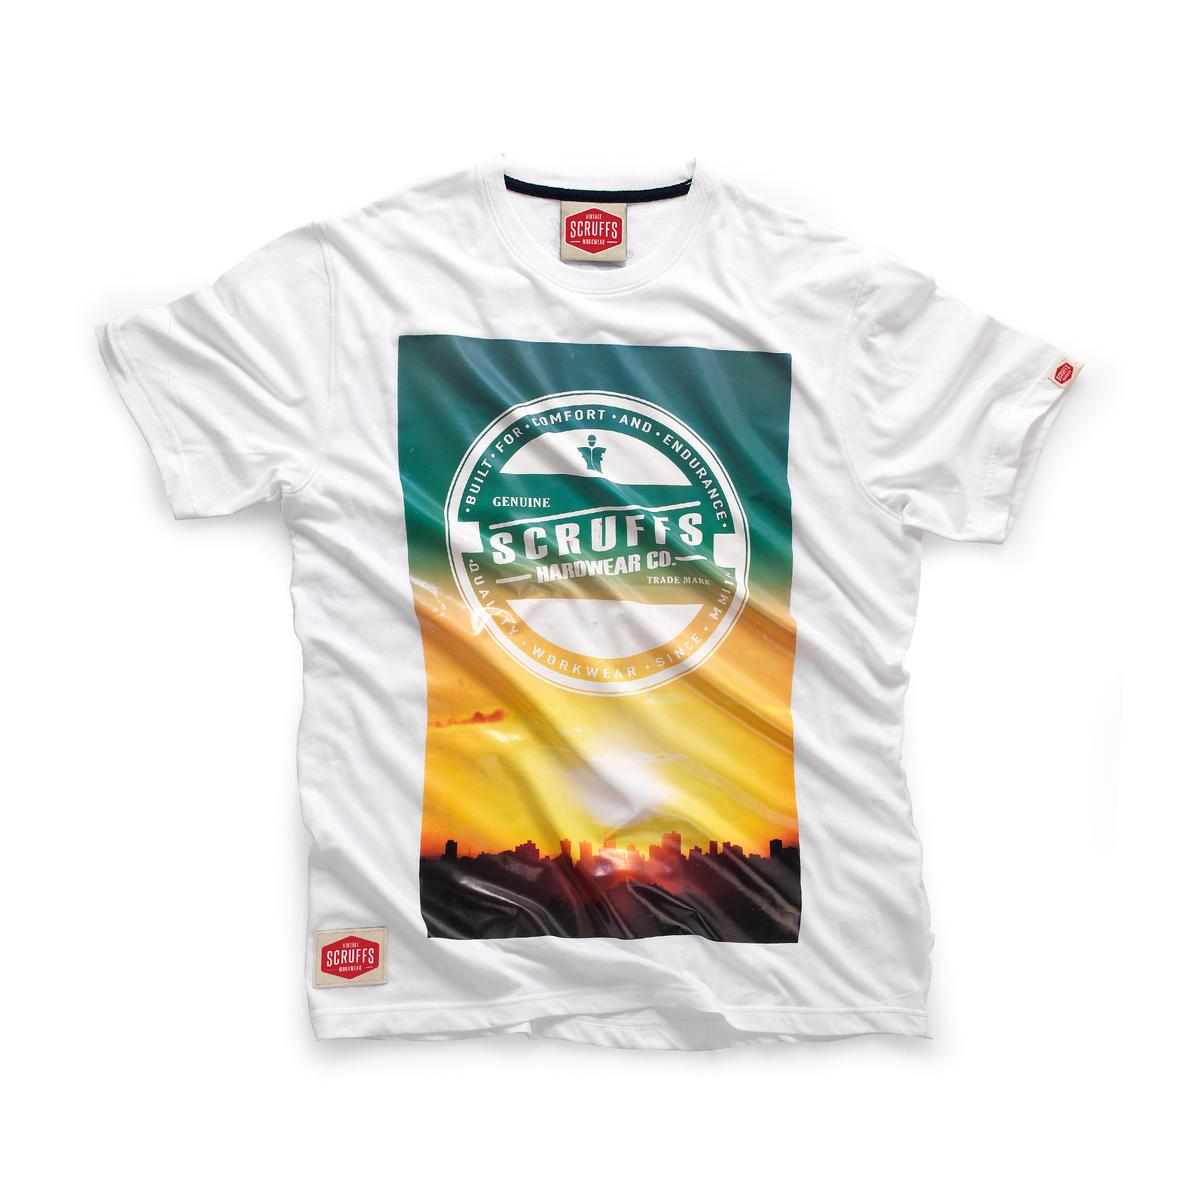 Scruffs Sunrise T-shirt